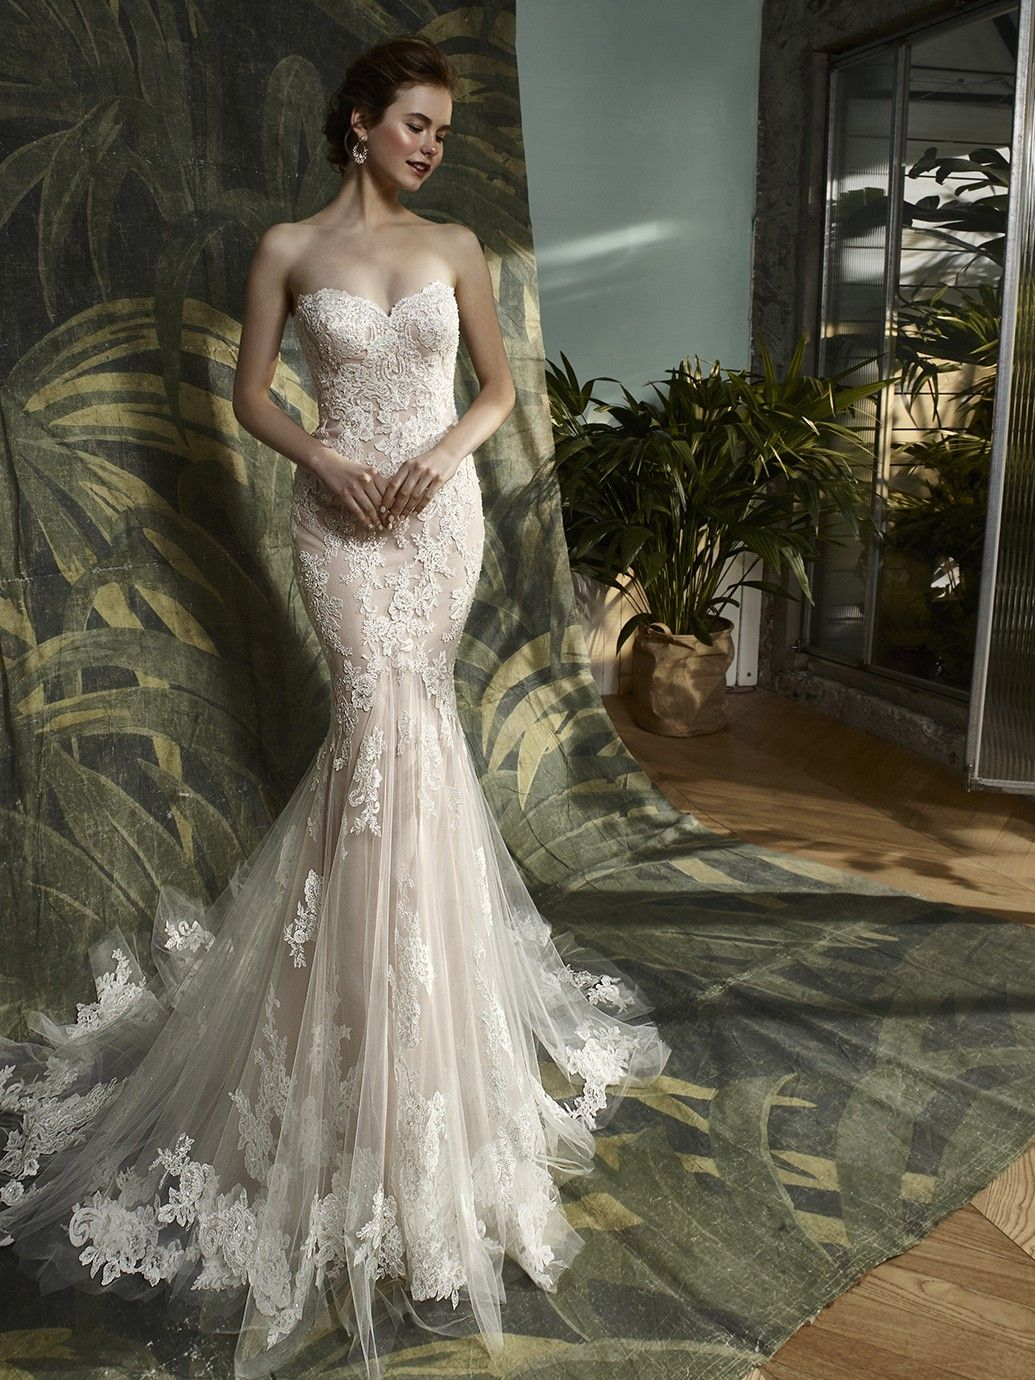 d7f2b4130cc Enzoani Wedding Dress. Find Enzoani and More at Here Comes the Bride ...